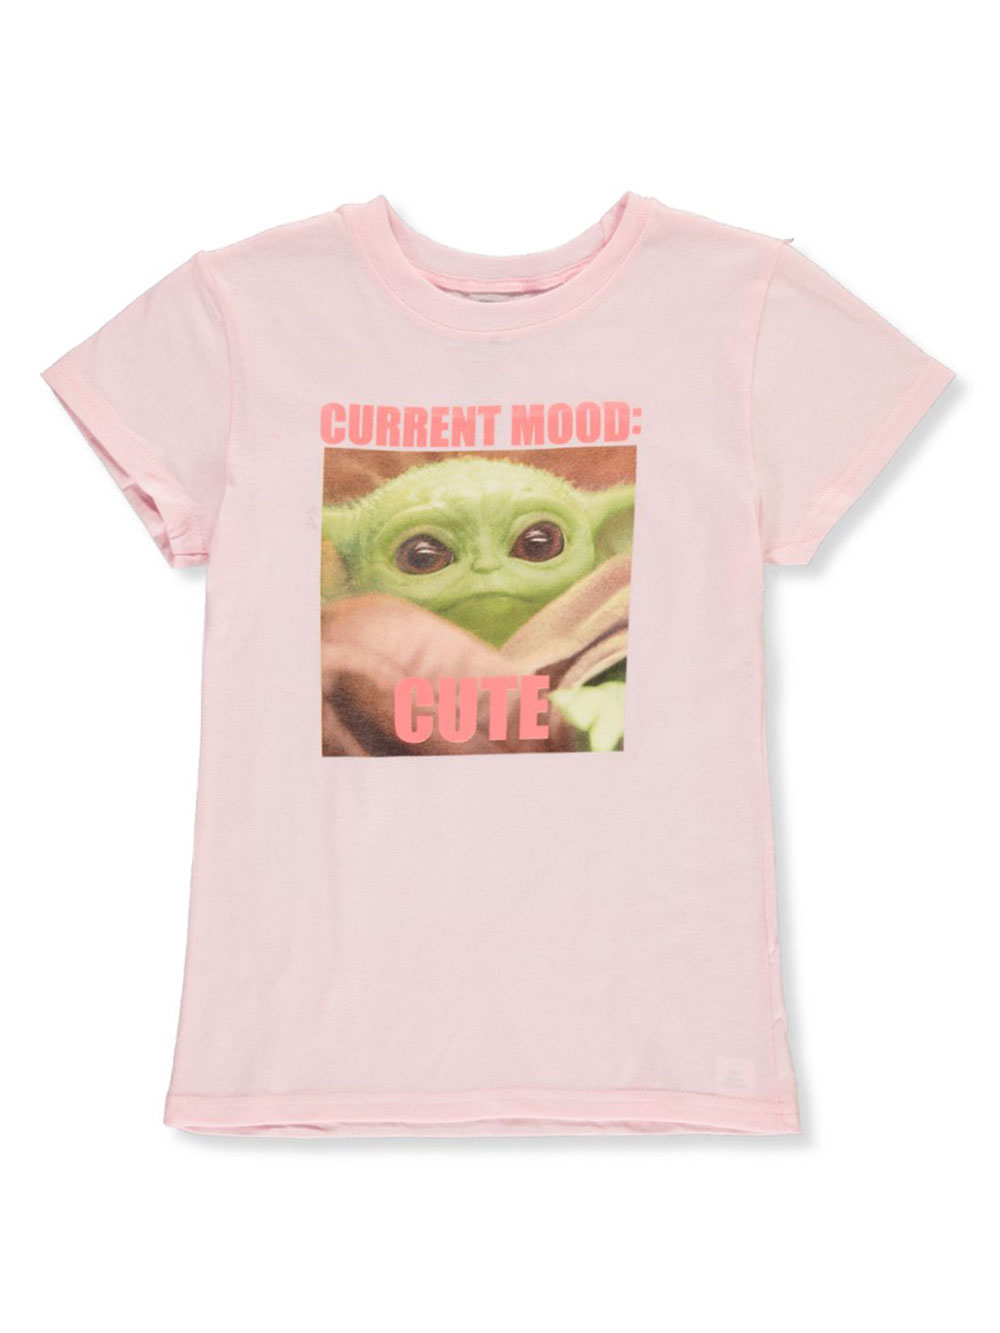 Pink and Multicolor T-Shirts